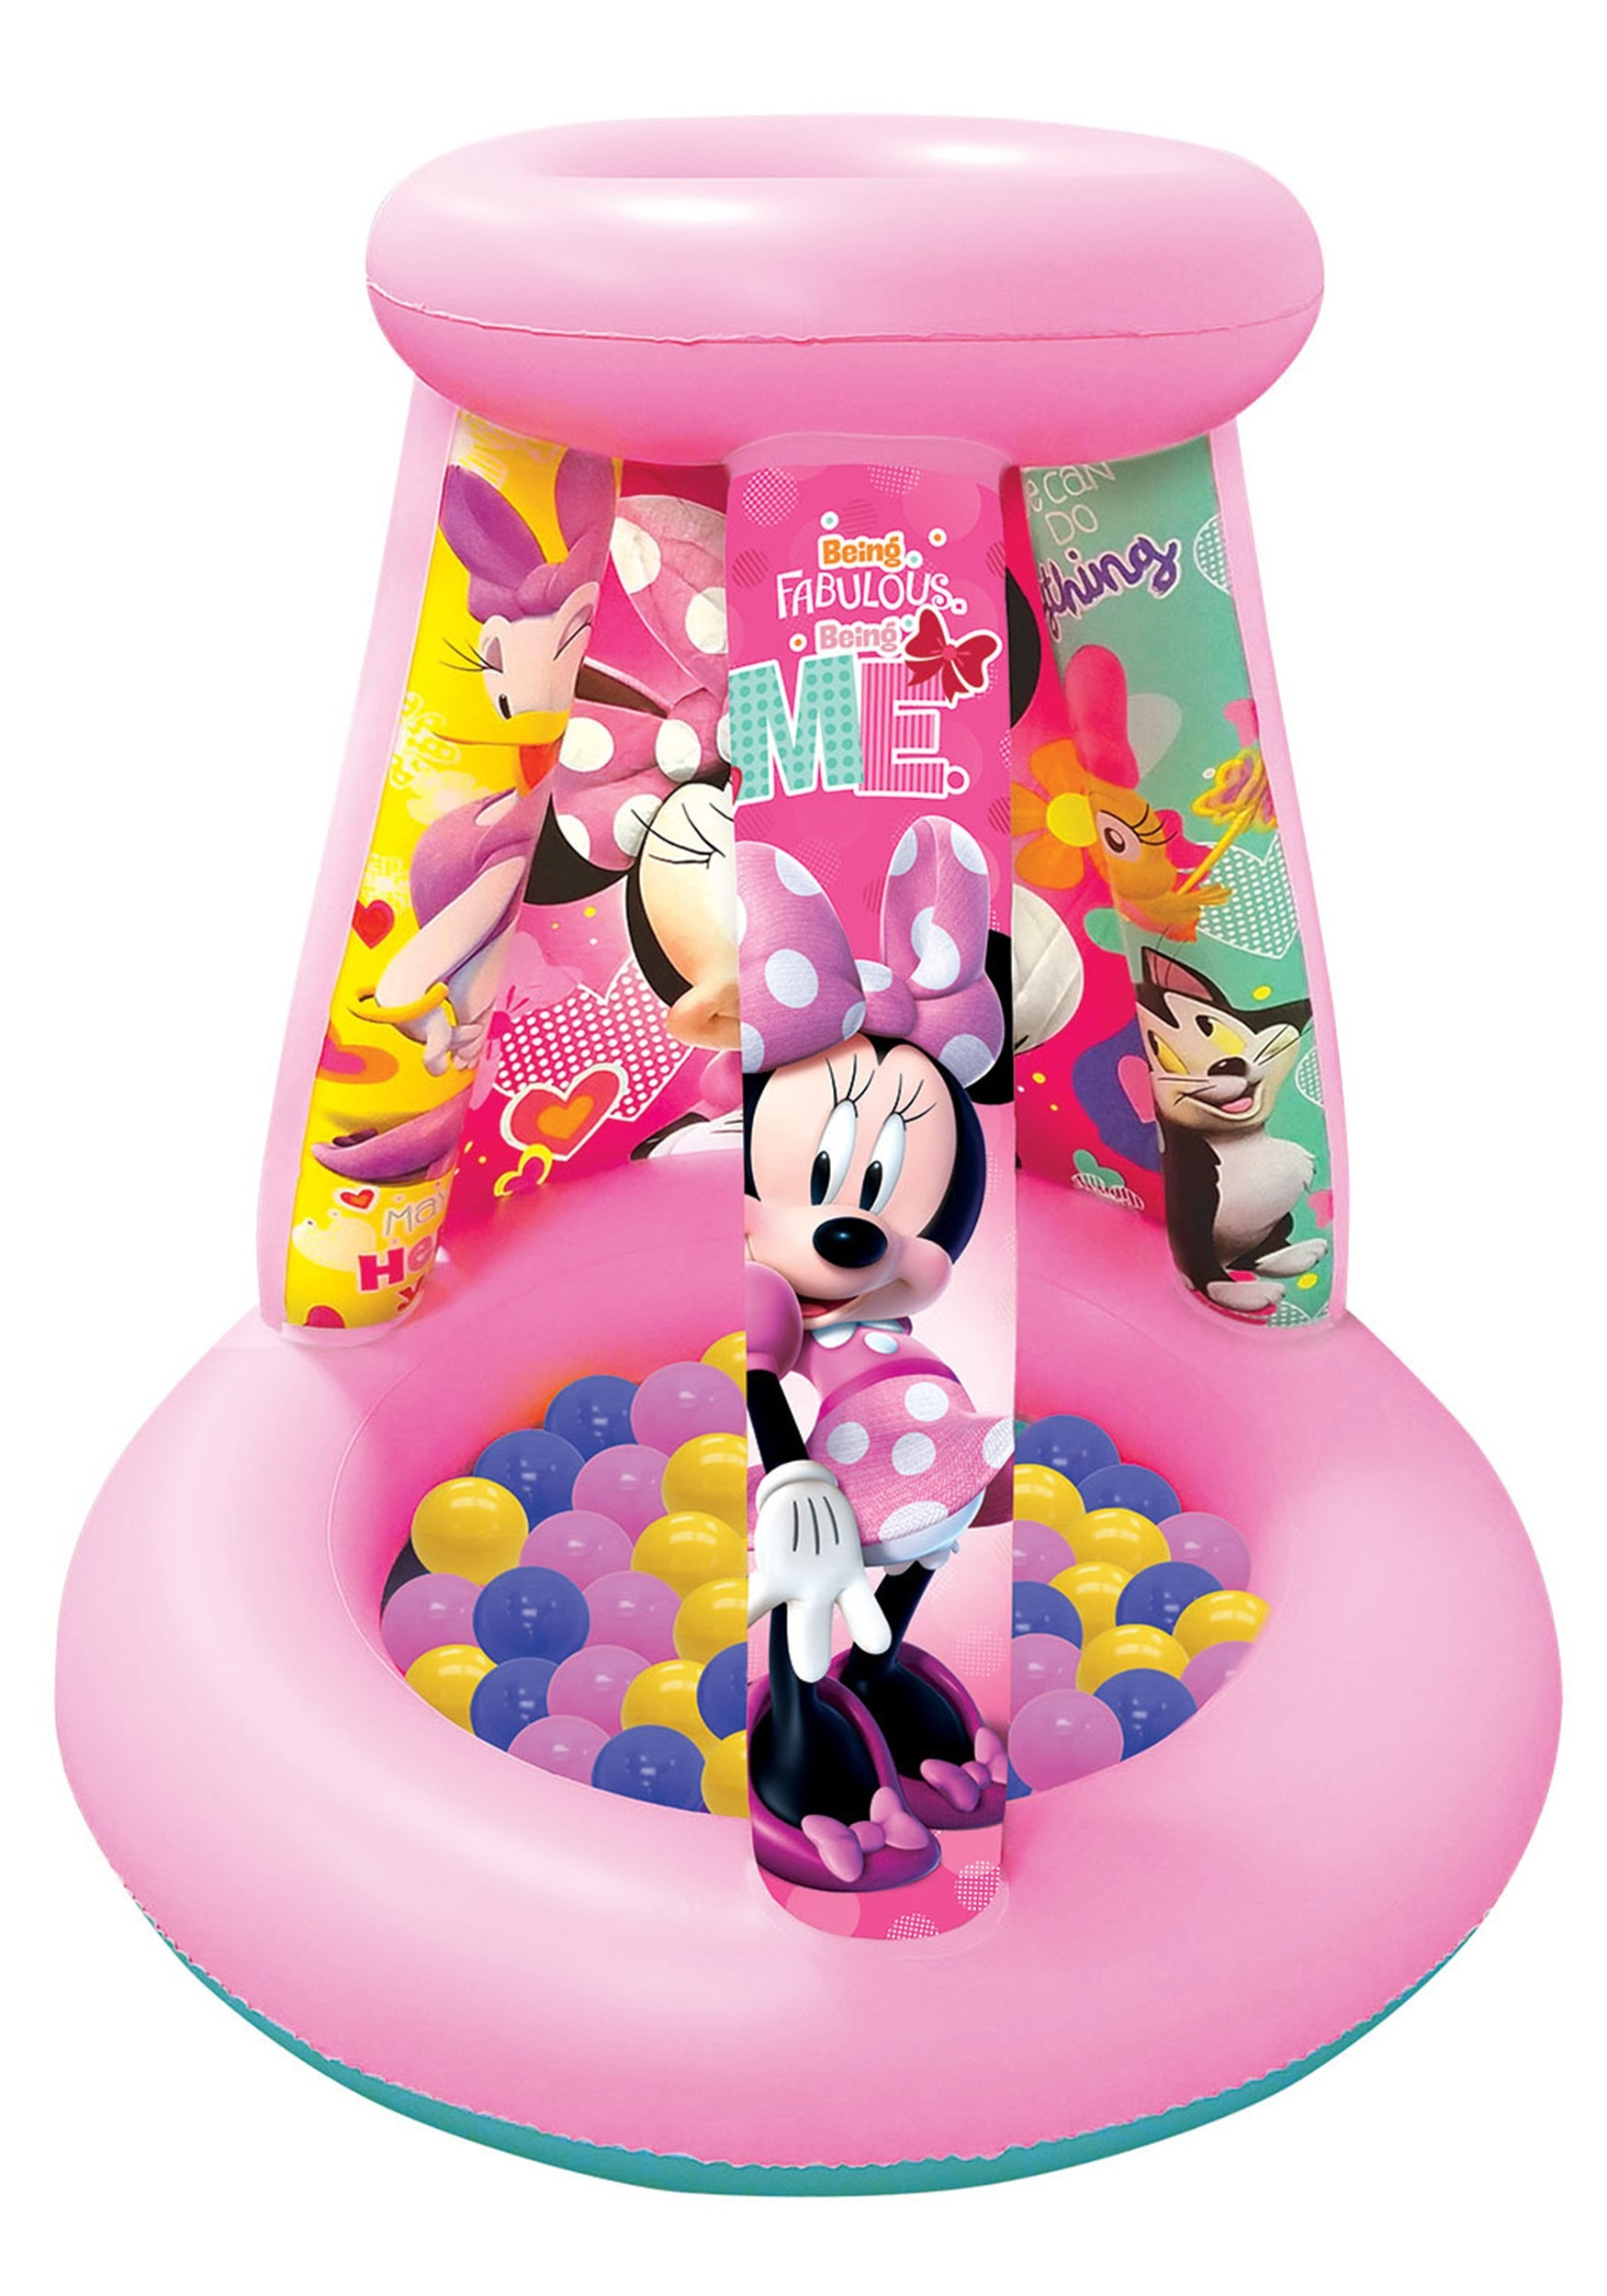 Minnie Mouse Playland w/ 15 Balls for Kids